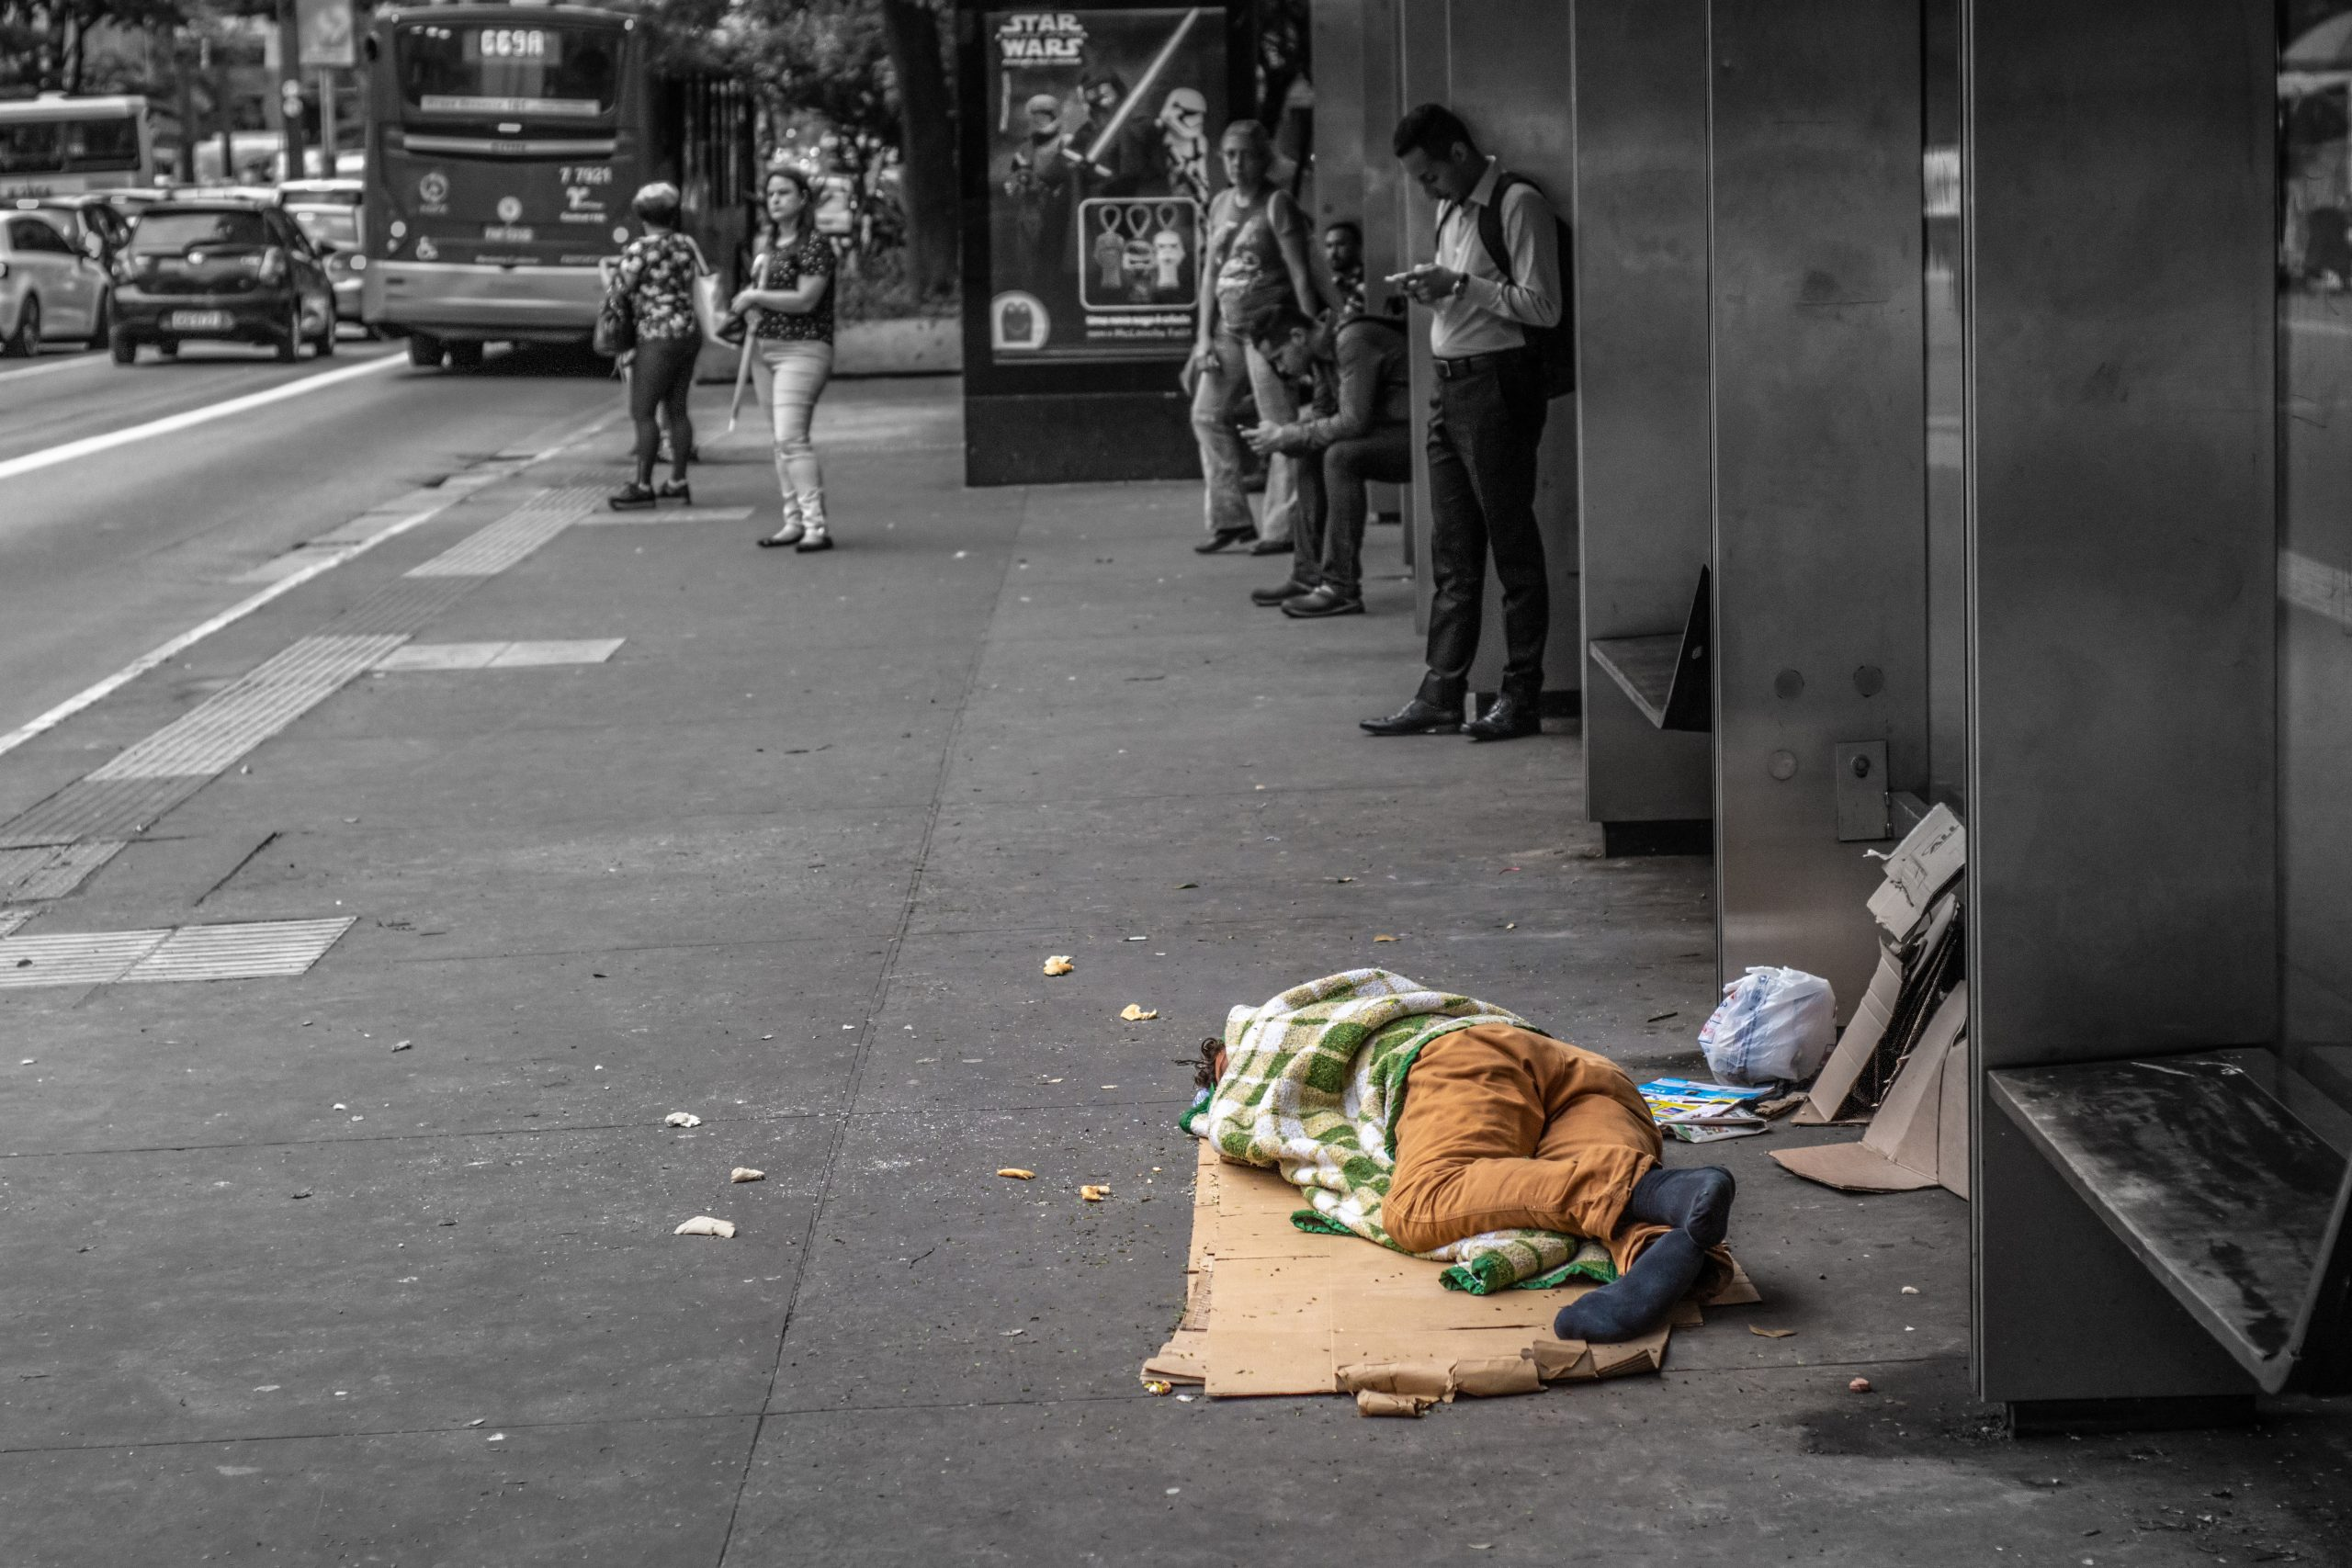 A homeless person sleeps on a piece of cardboard on the sidewalk. The image is largely black-and-white, with the homeless person appearing in color.